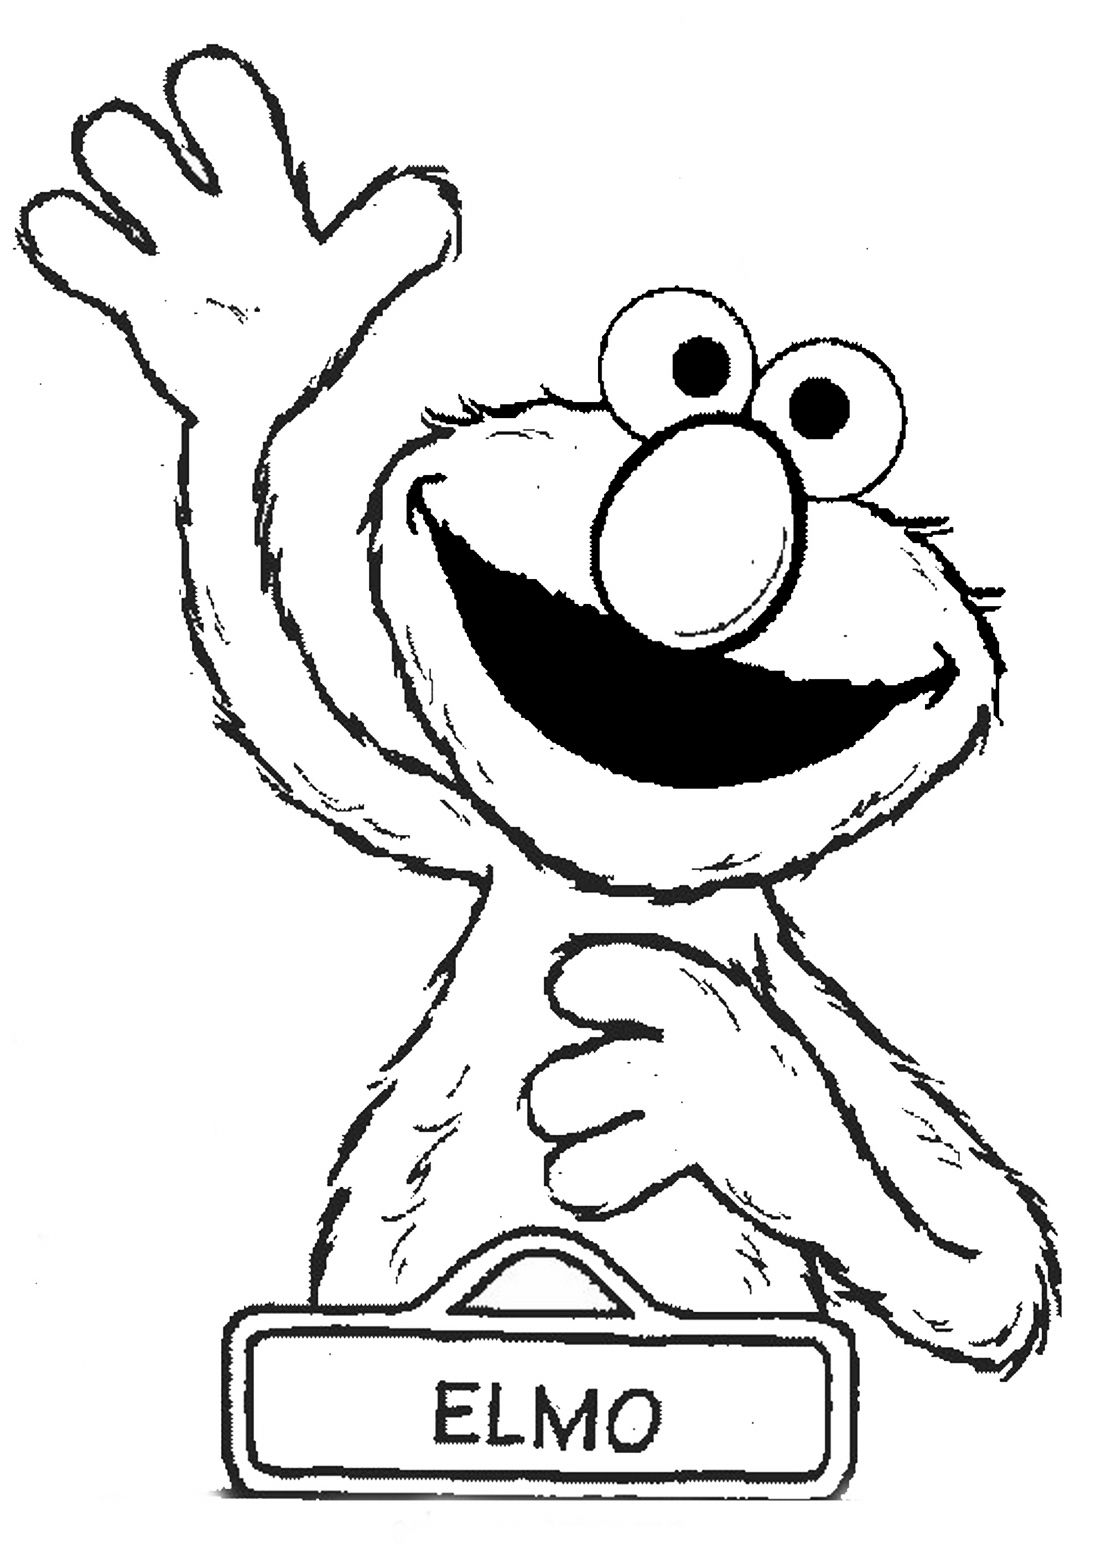 Elmo Coloring Pages Fun Activity Idea For Toddlers Kids At The